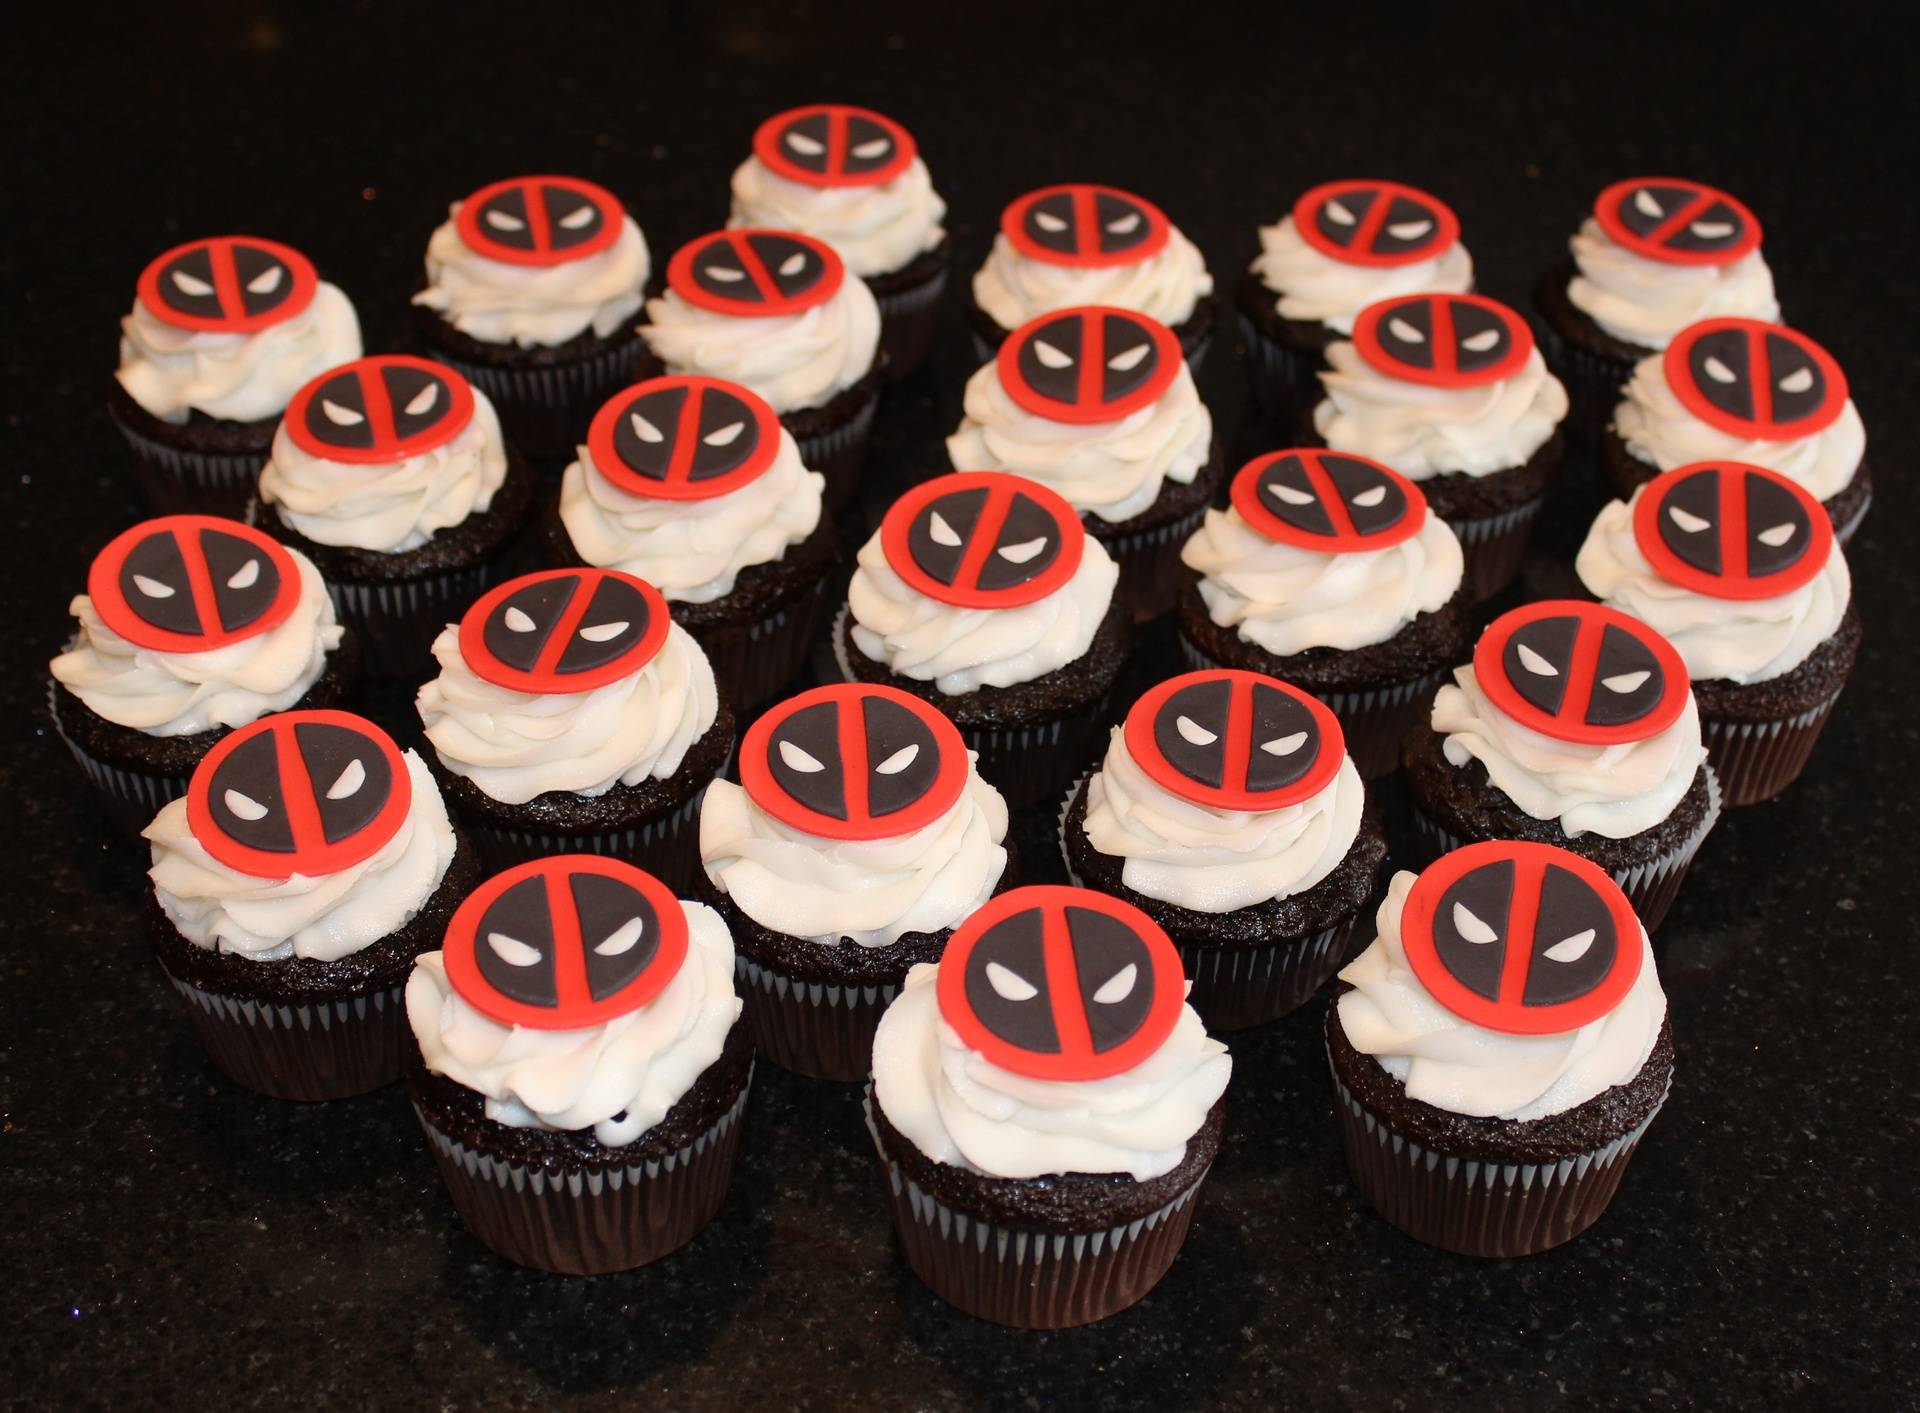 Deadpool Theme Cupcakes